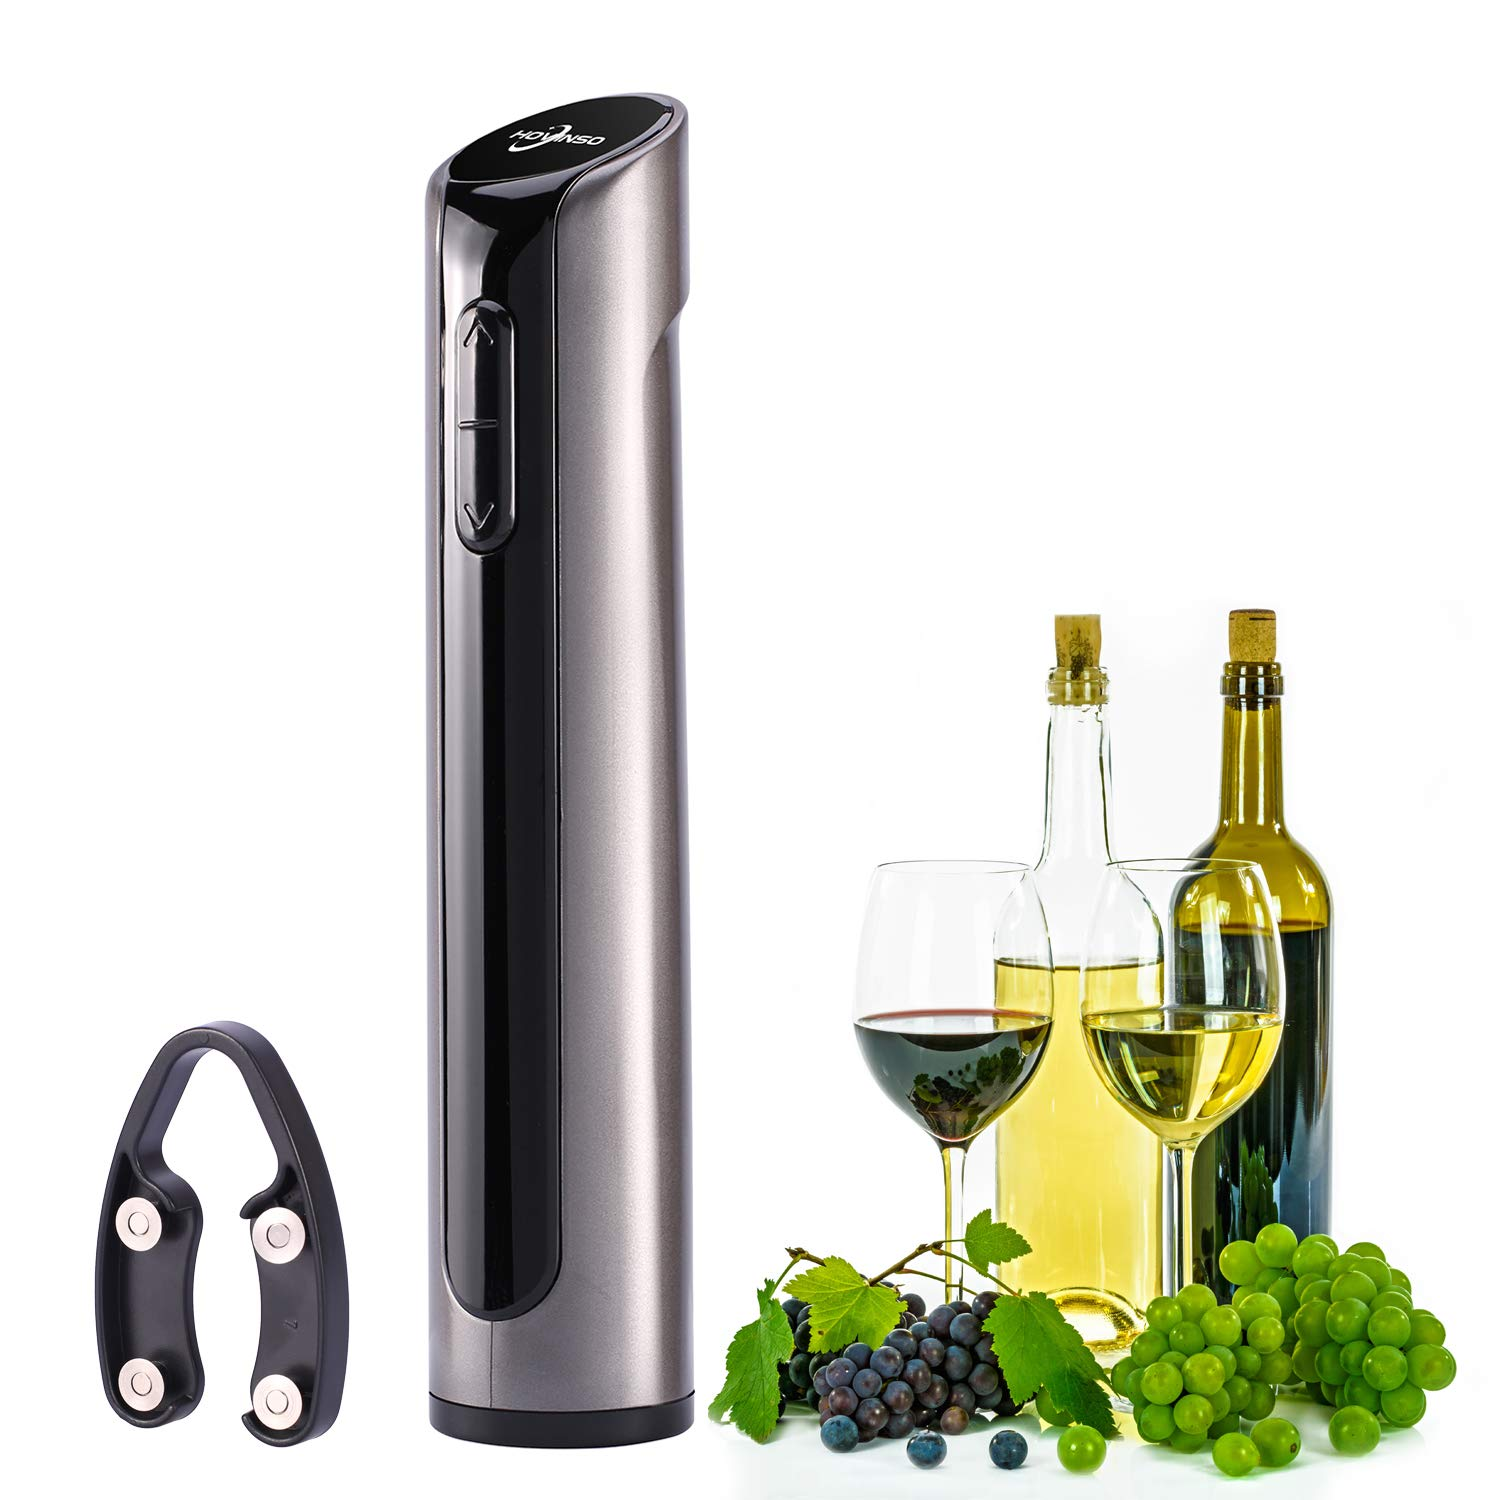 Hovinso Electric Set-Rechargeable Cordless Corkscrew Wine Opener with Removable Foil Cutter for Rubber/Plastic Corks/Large Format Bottles(Gun Metal),